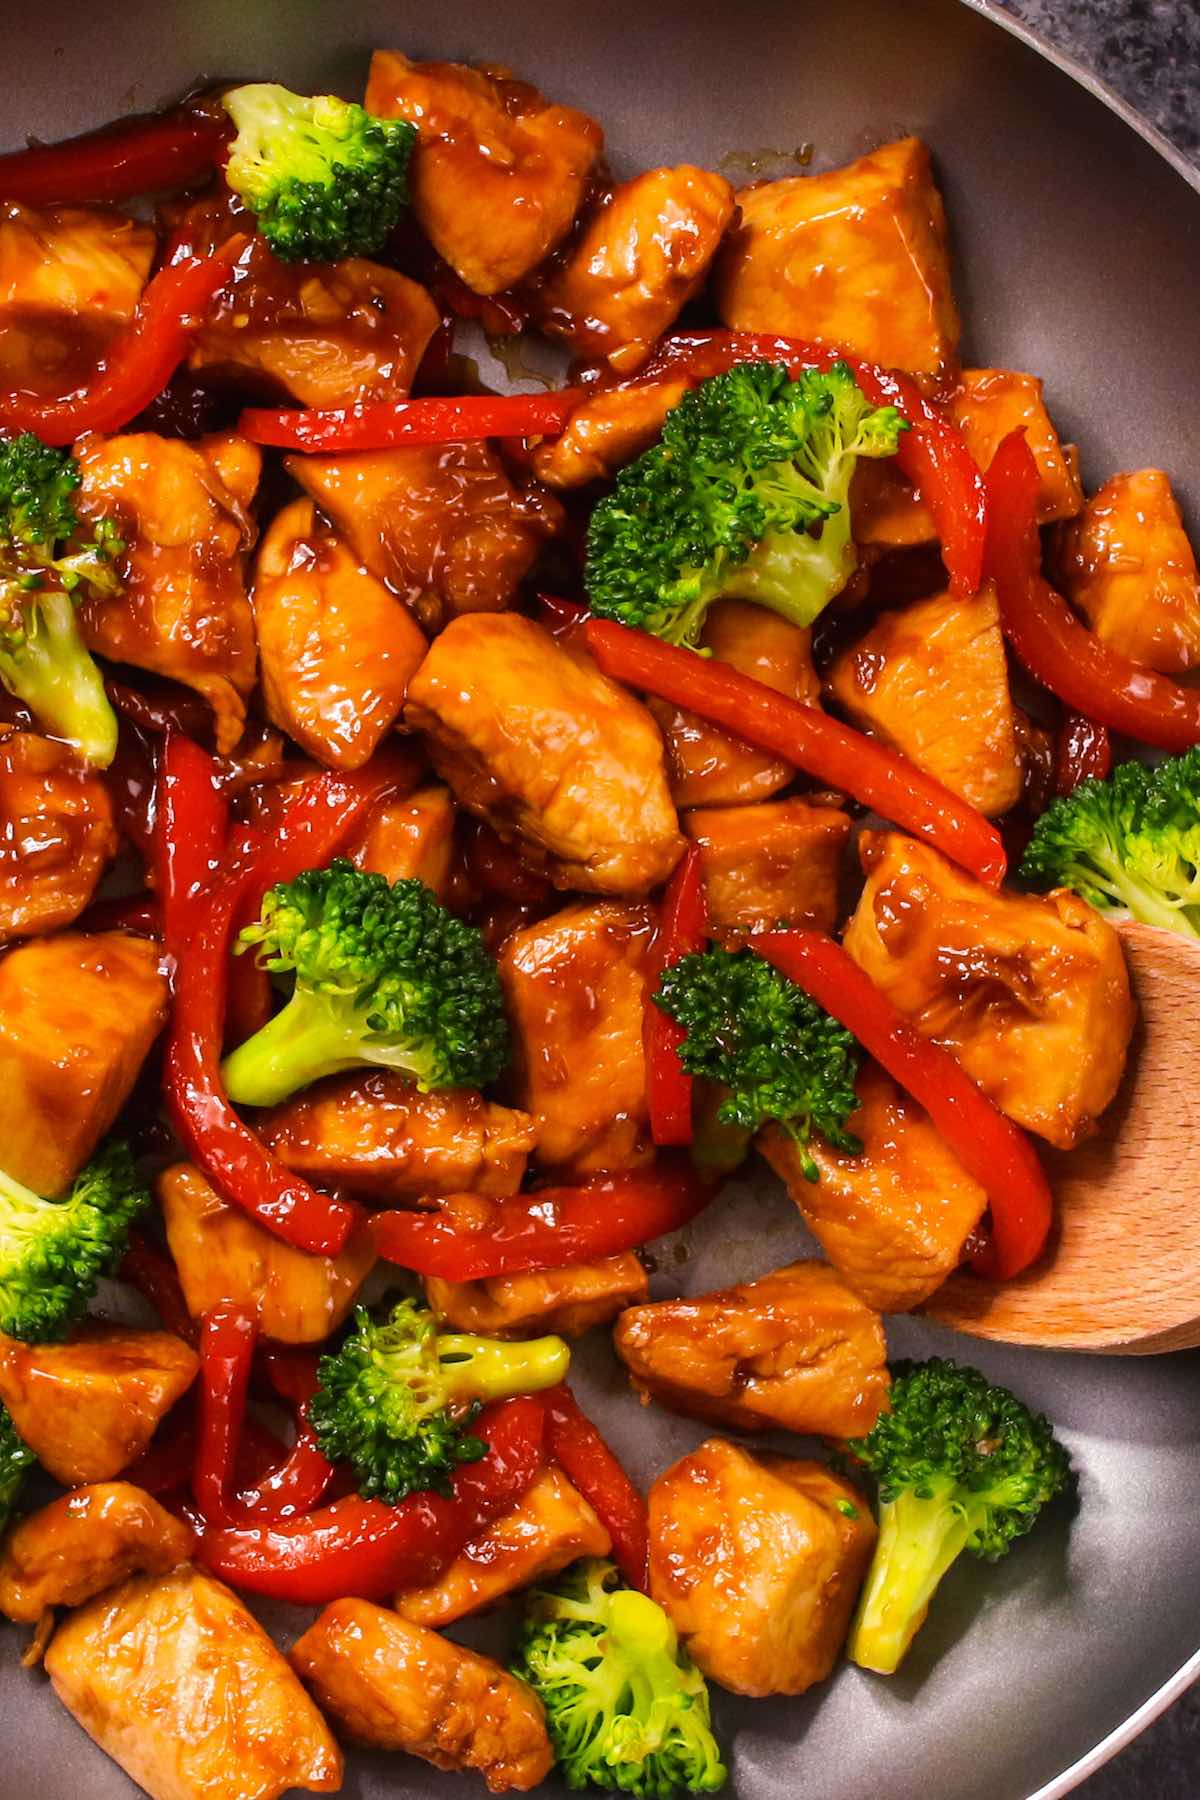 Sticky Honey Garlic Chicken is a simple and fast stir-fry where tender chicken is coated with the 5-ingredient honey garlic sauce. This easy chicken dinner will be on your table in 15 minutes.